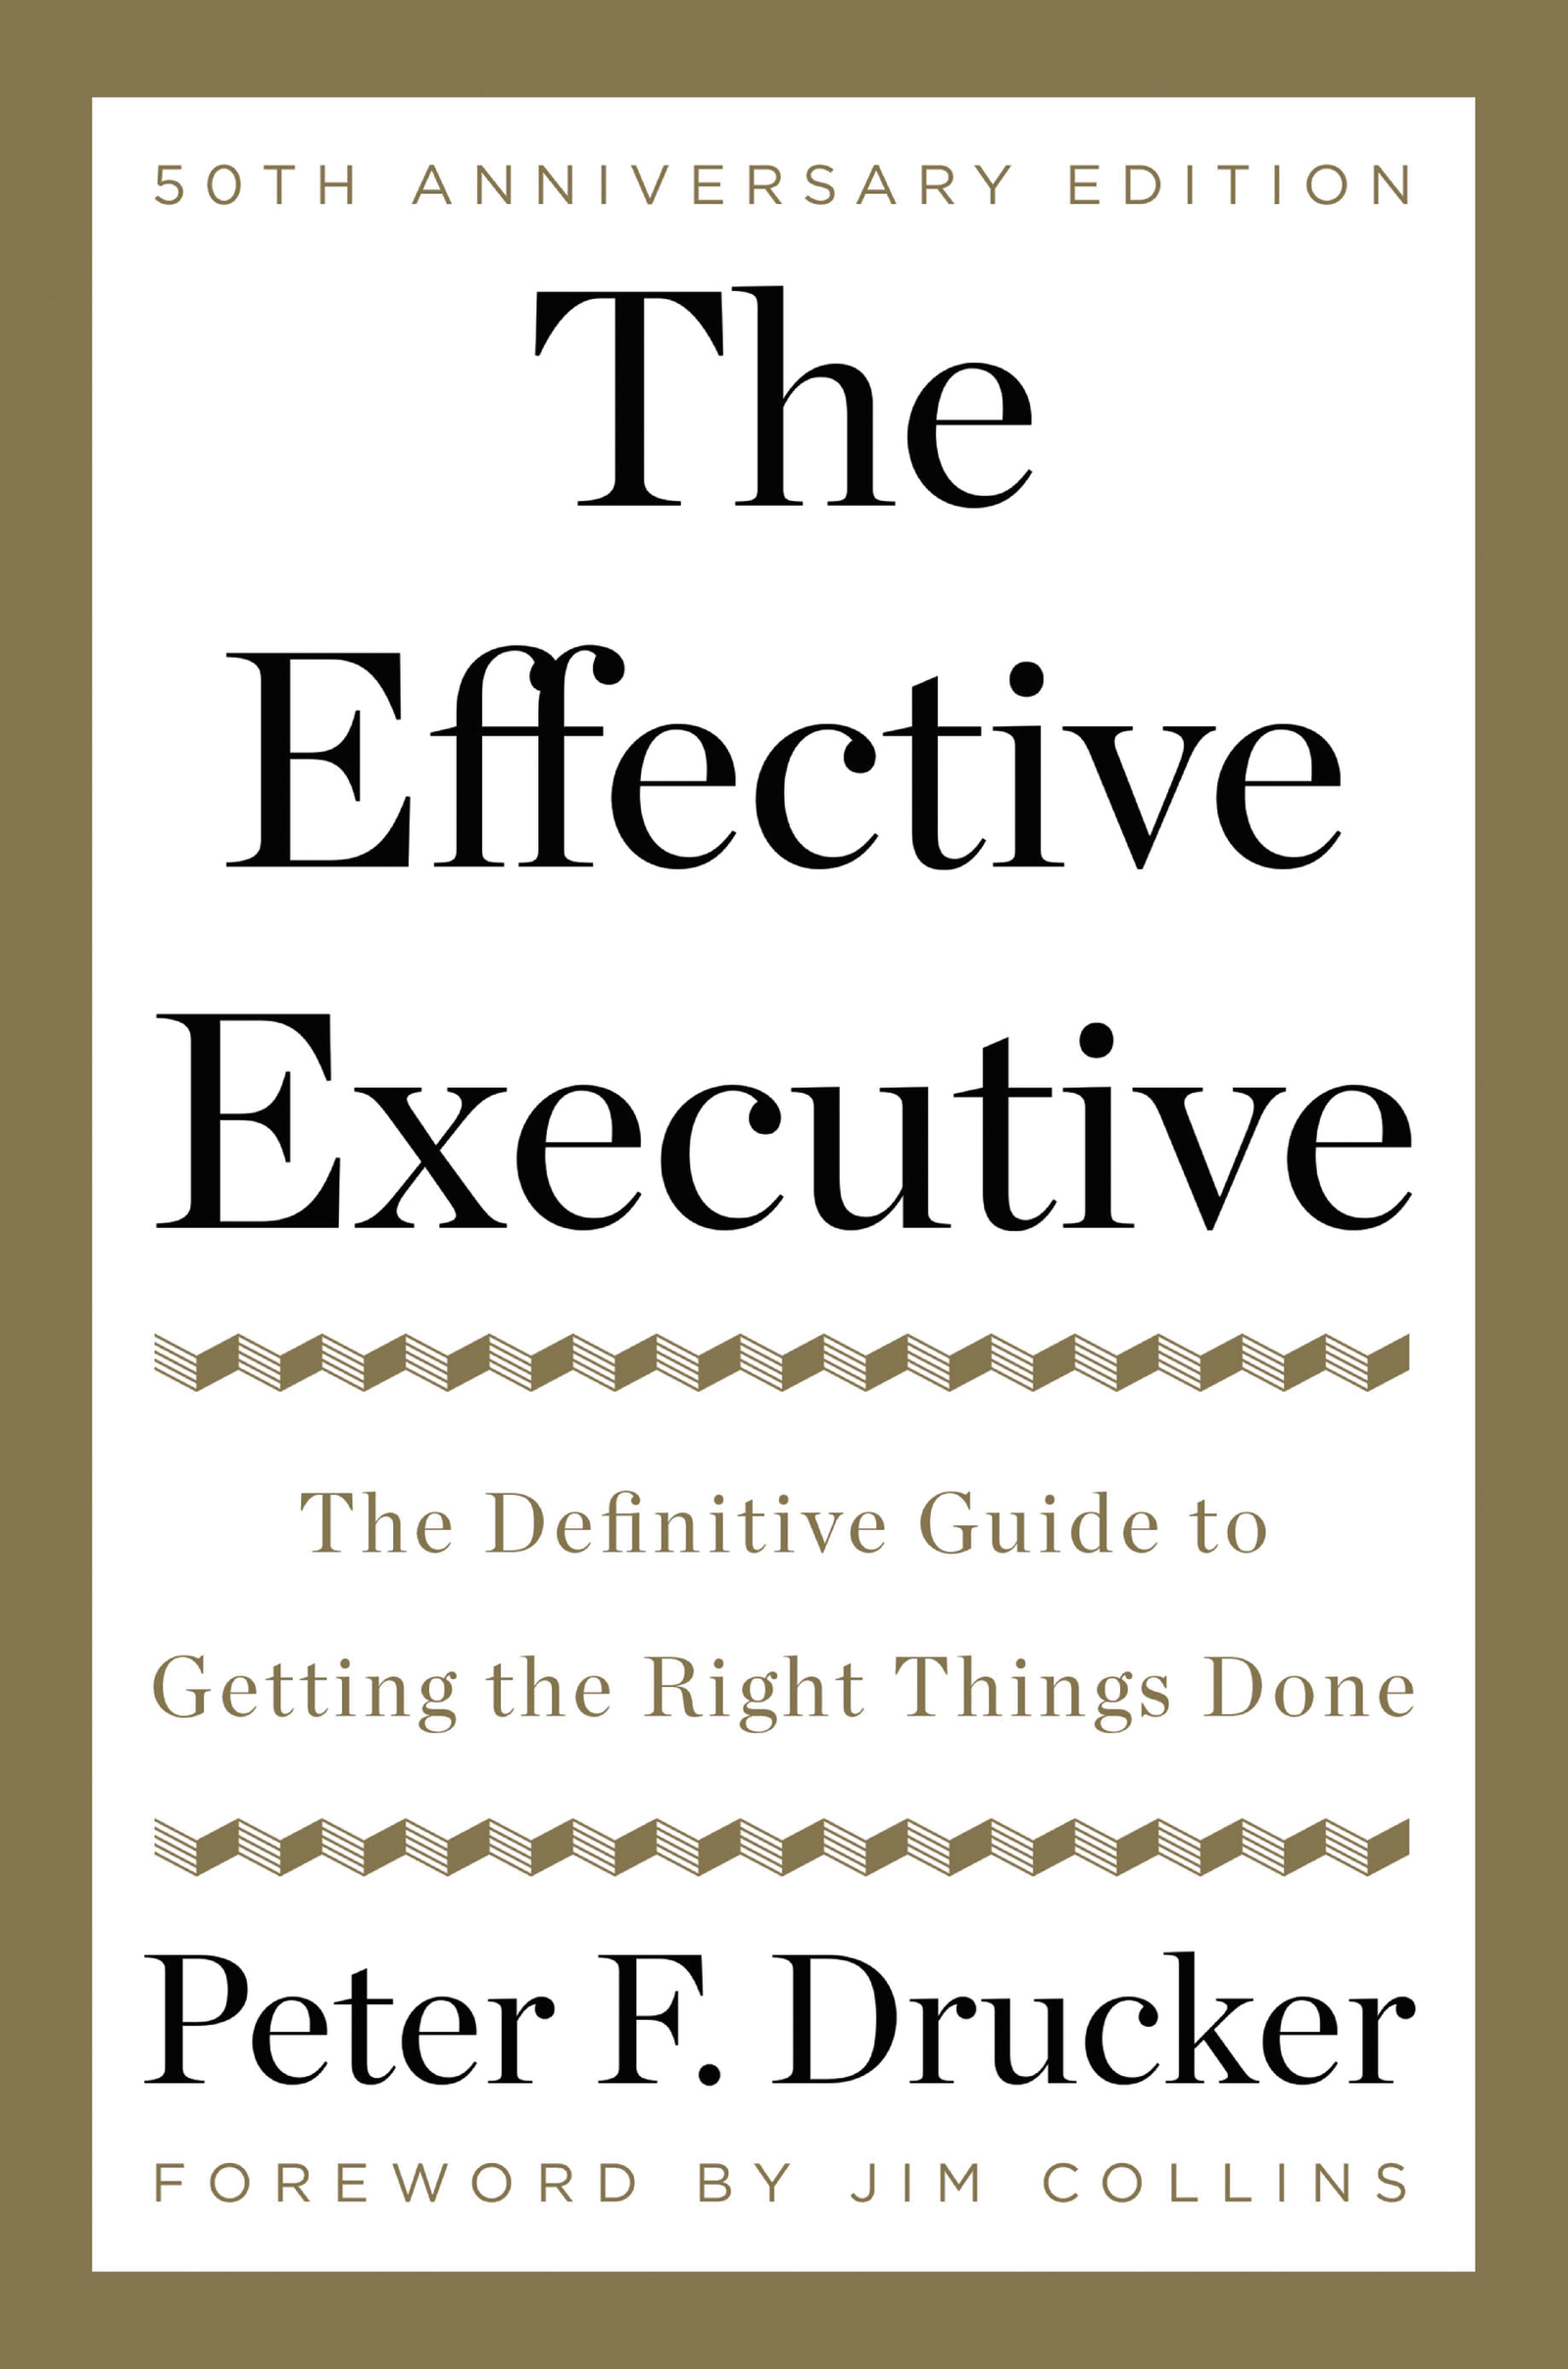 Download Ebook The Effective Executive by Peter F. Drucker Pdf